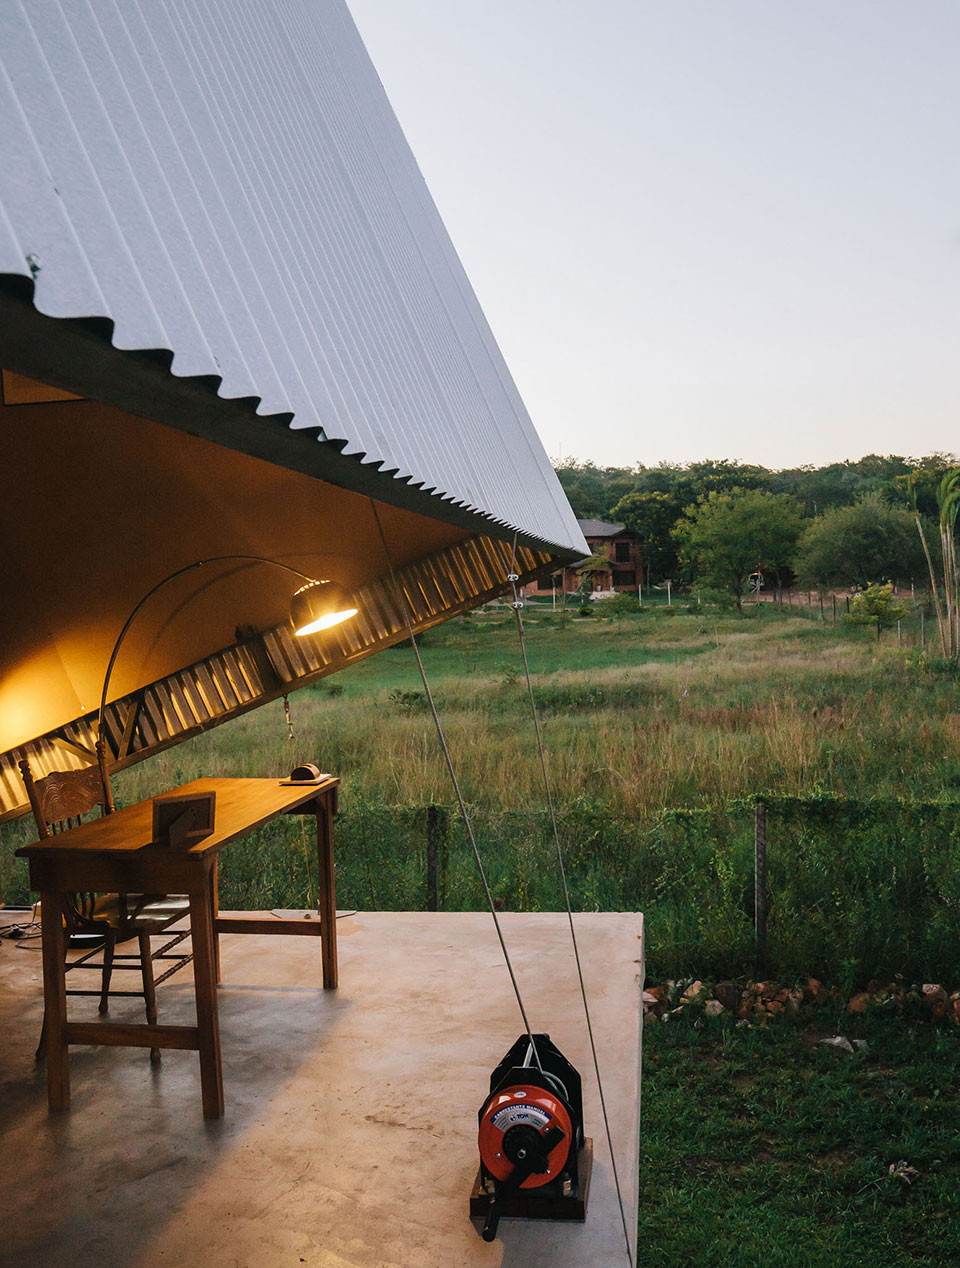 Caja Oscura House in Paraguay by Javier Corvalan | Yellowtrace.